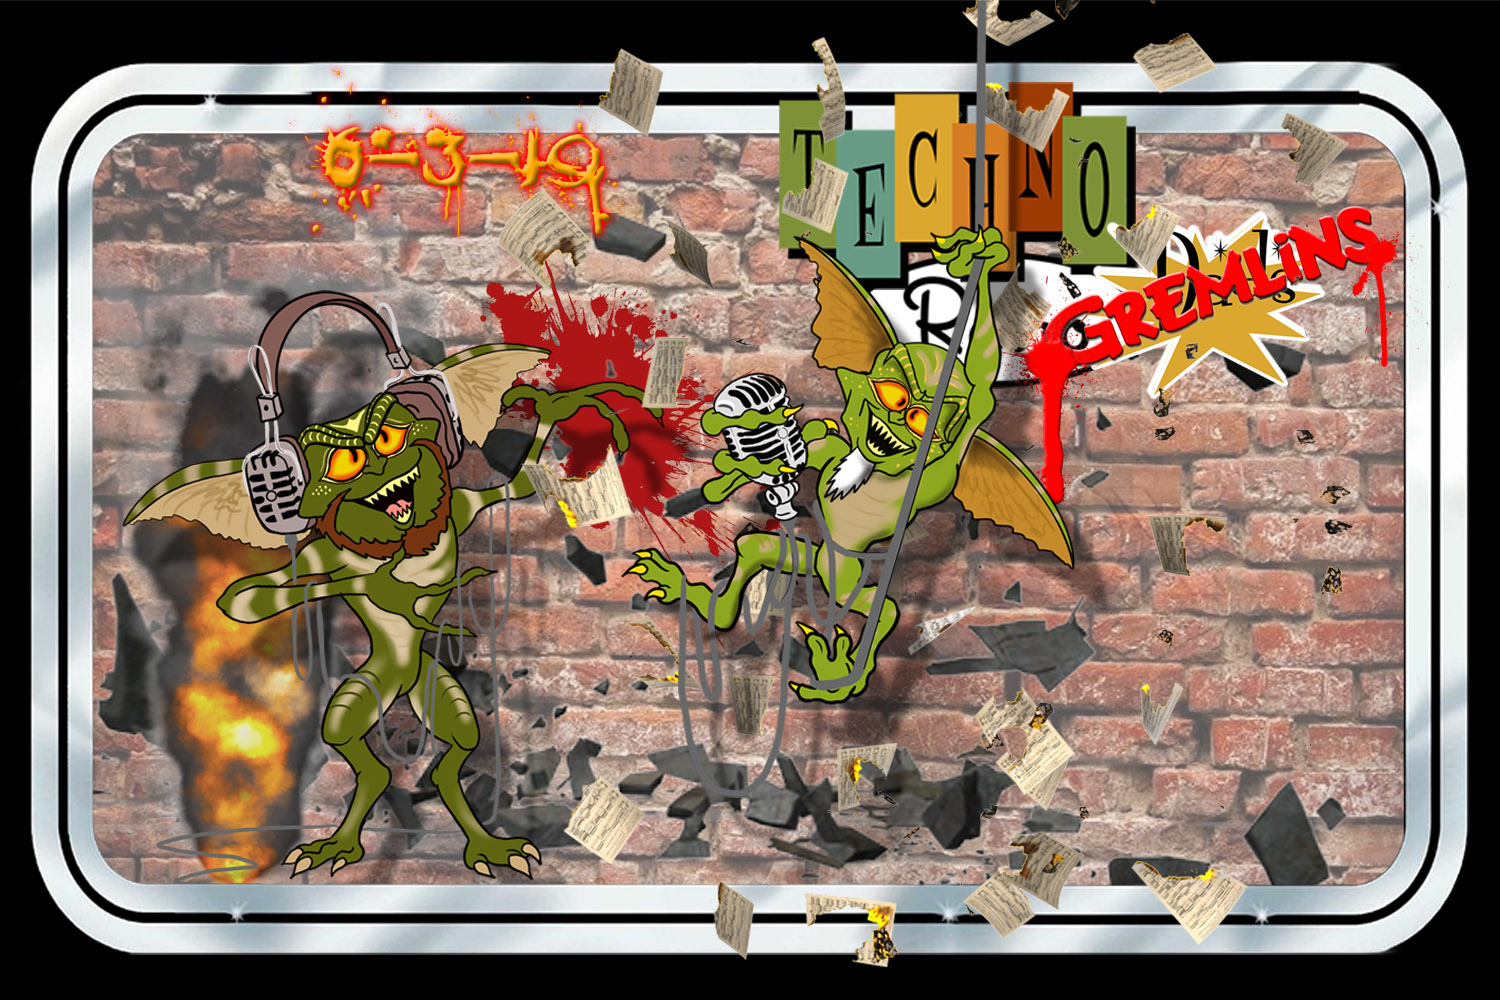 TechnoRetro Dads: Gremlins Are Another Reason for PG-13